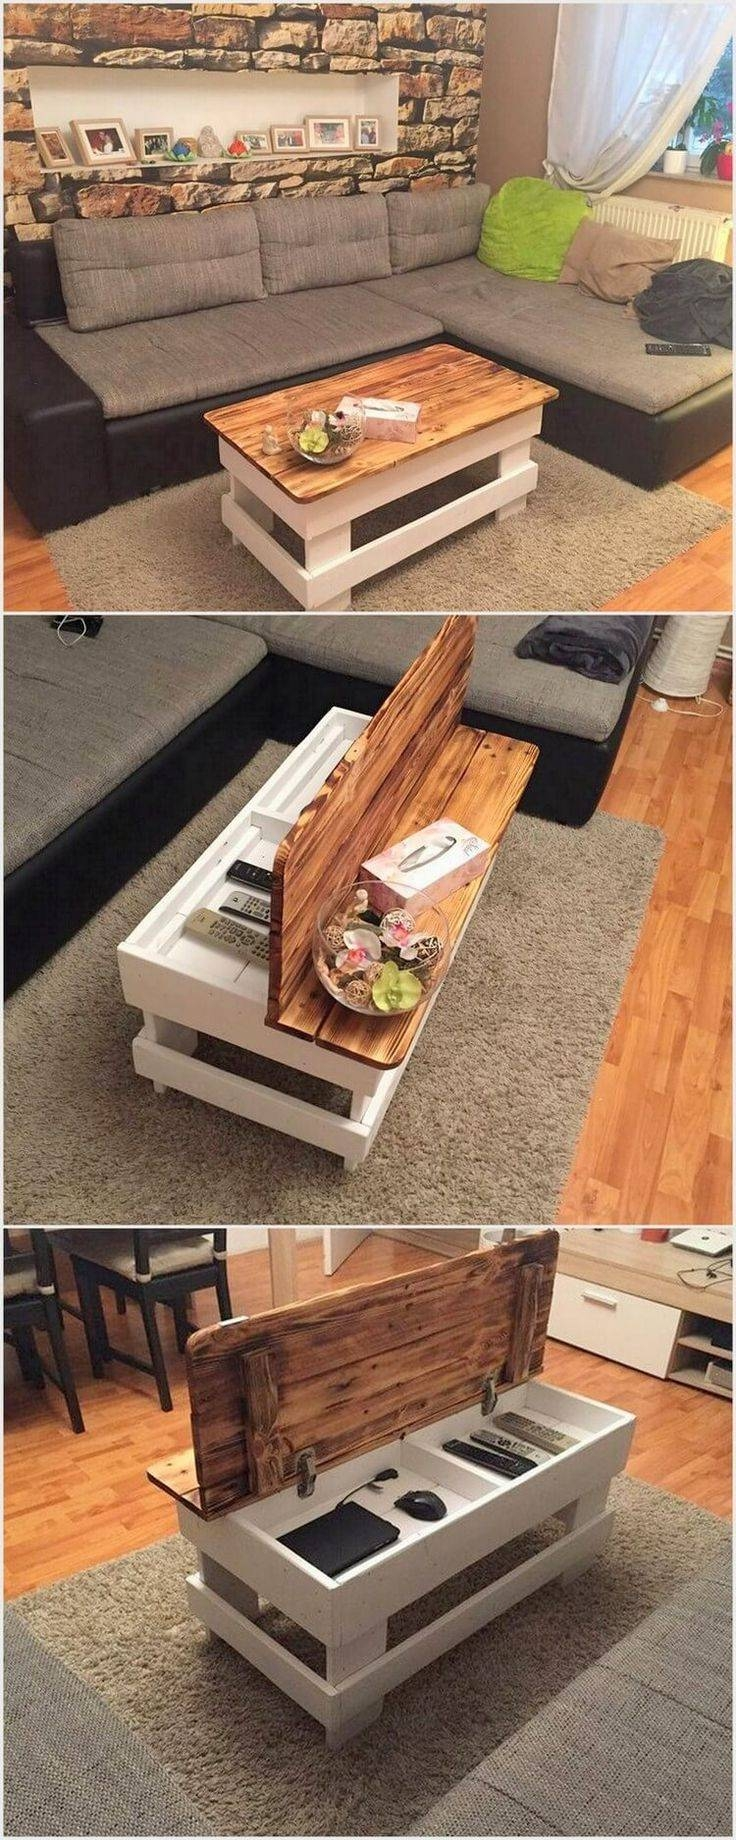 Best 25+ Coffee Table With Storage Ideas Only On Pinterest pertaining to Coffee Tables With Storage (Image 3 of 30)